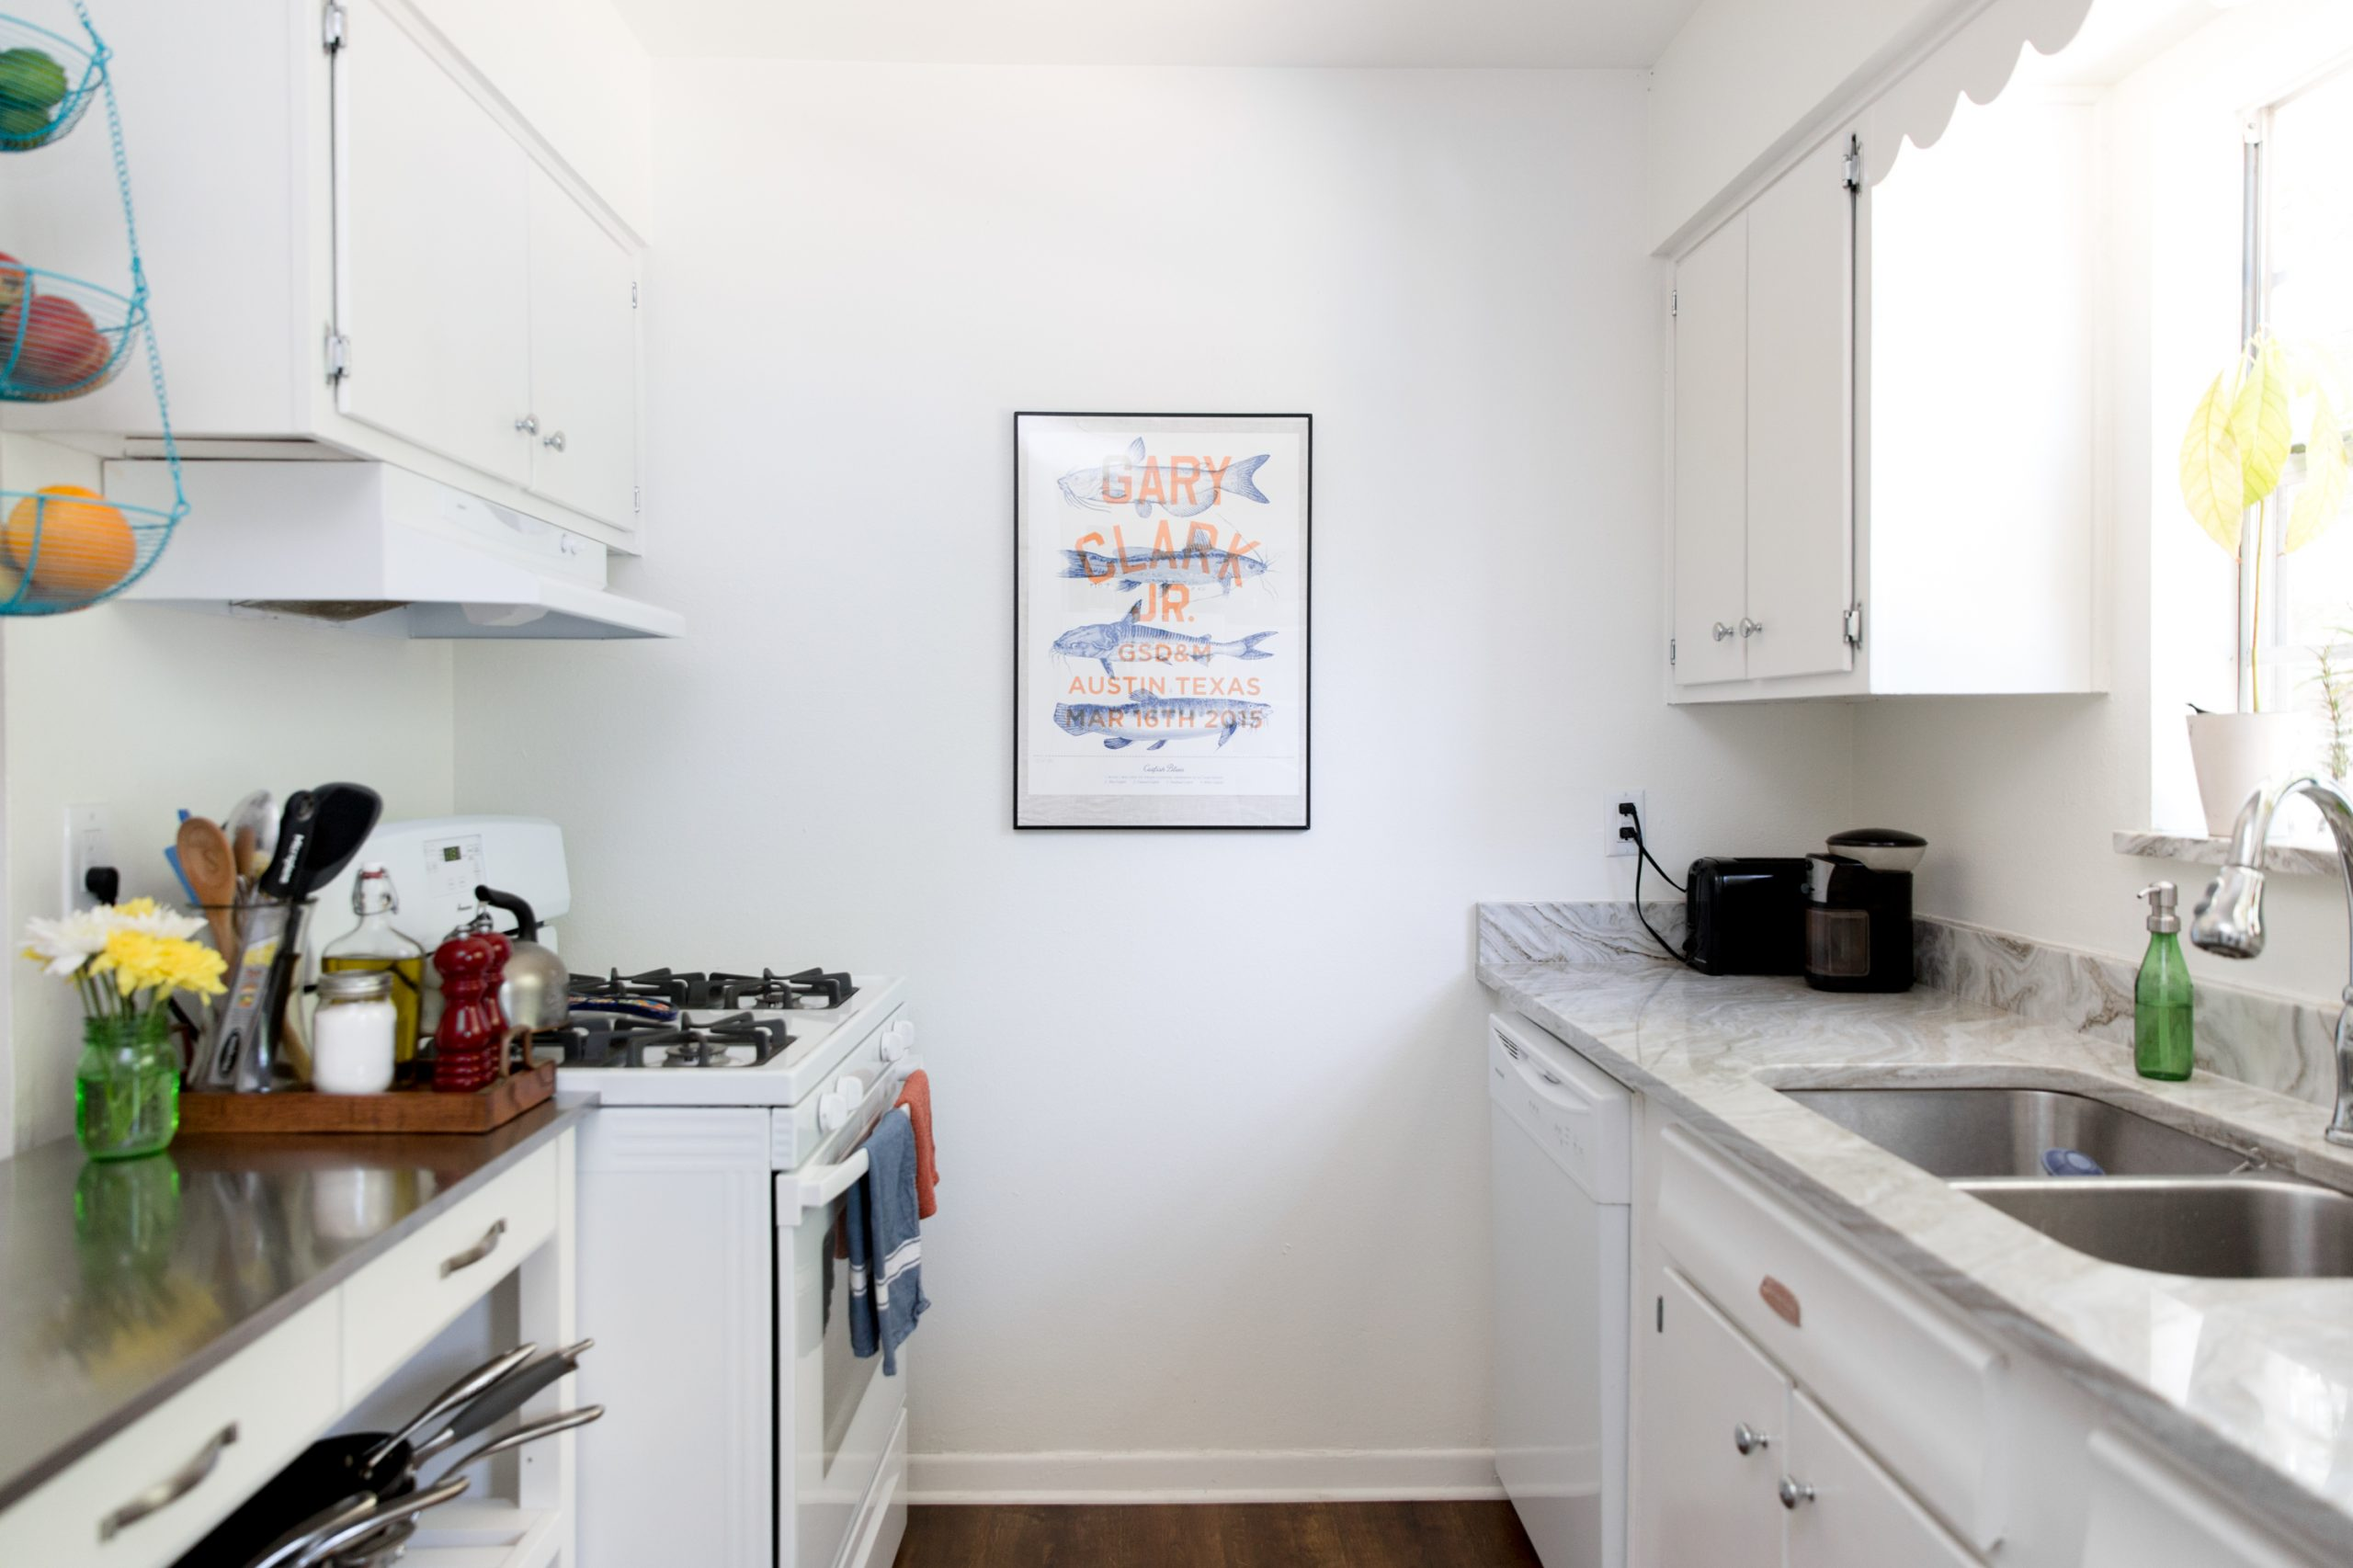 Working with a limited counter space